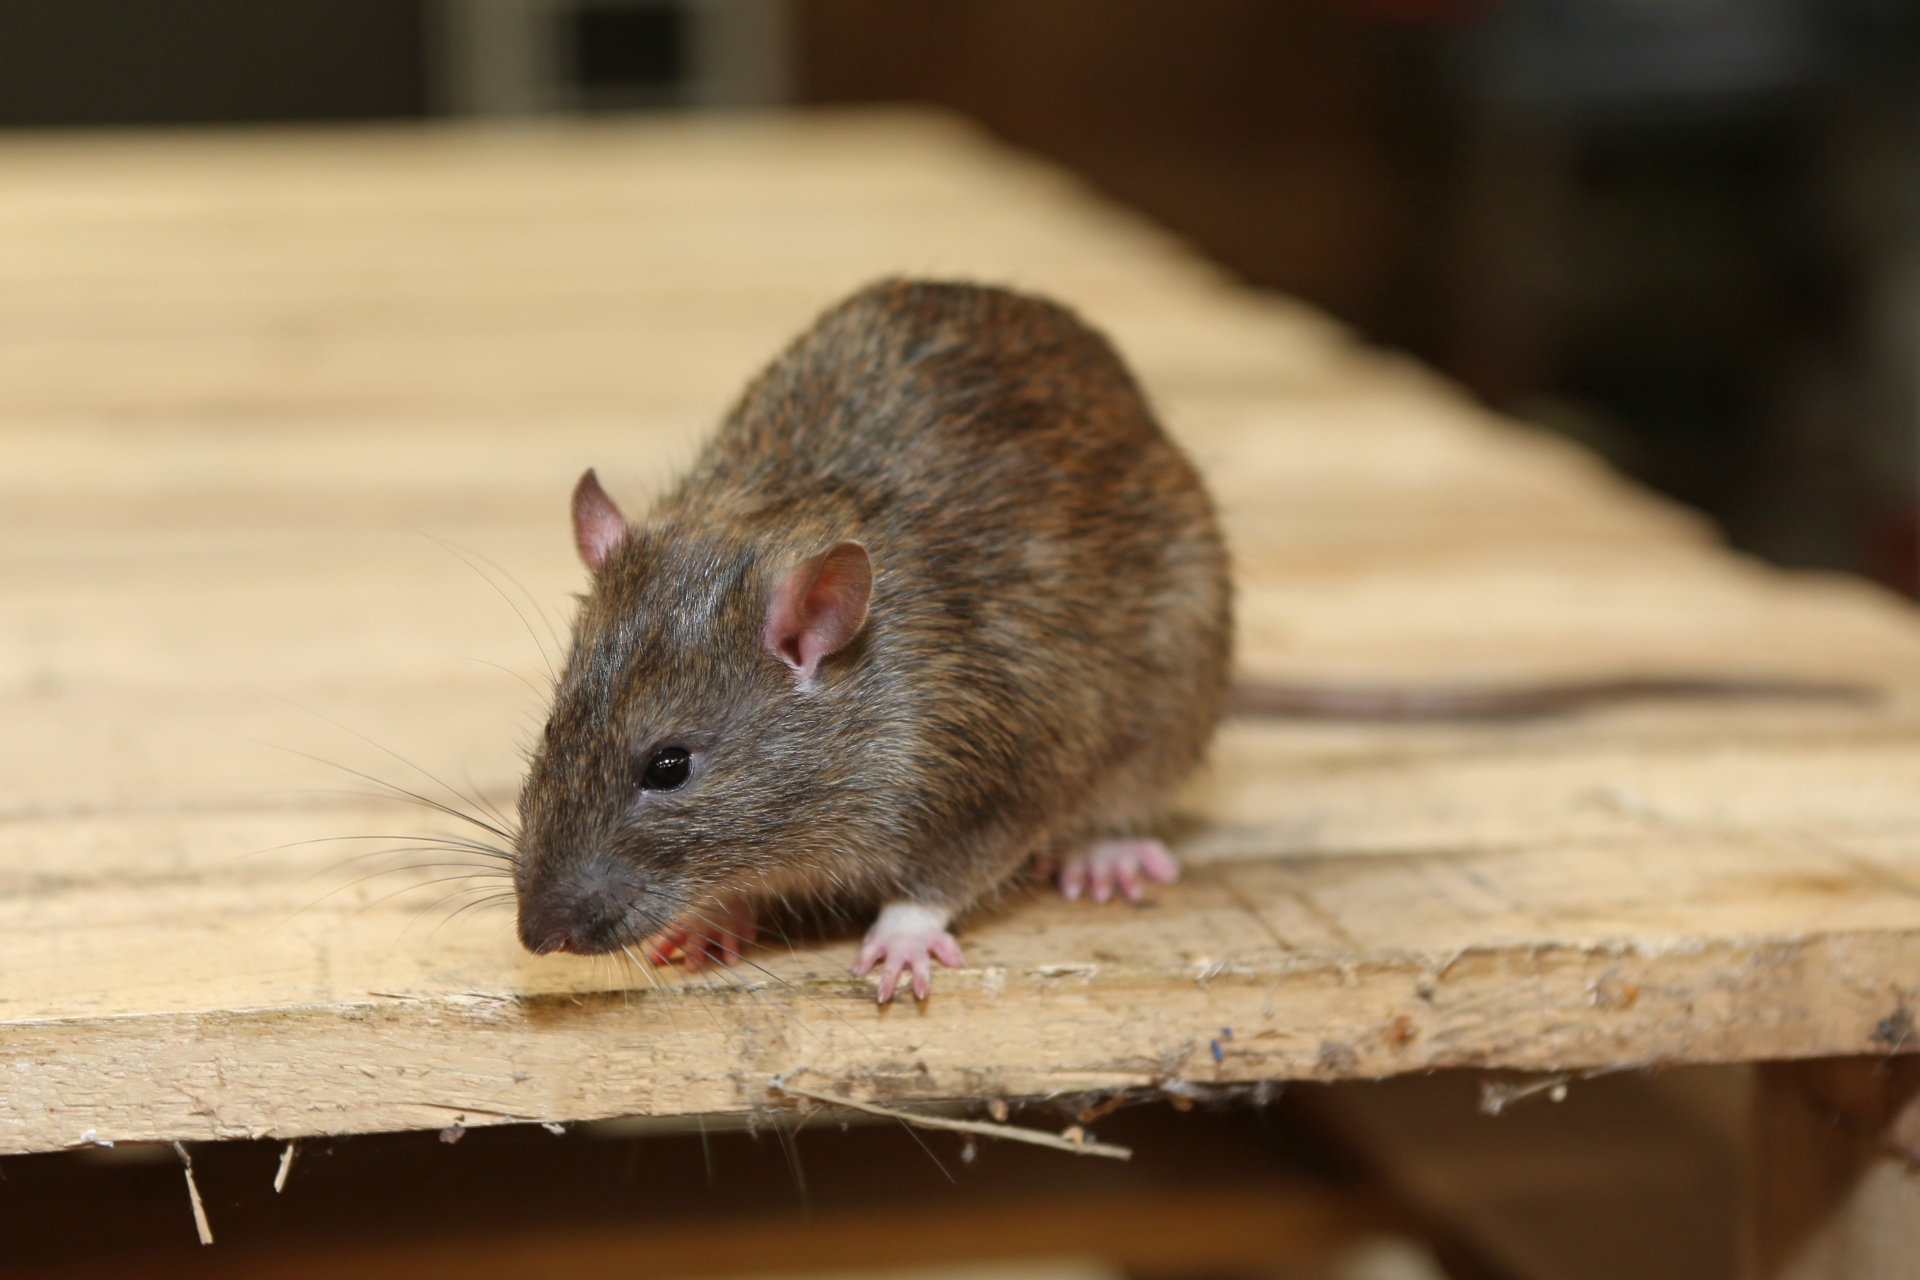 Rat Infestation, Pest Control in Catford, Hither Green, SE6. Call Now 020 8166 9746